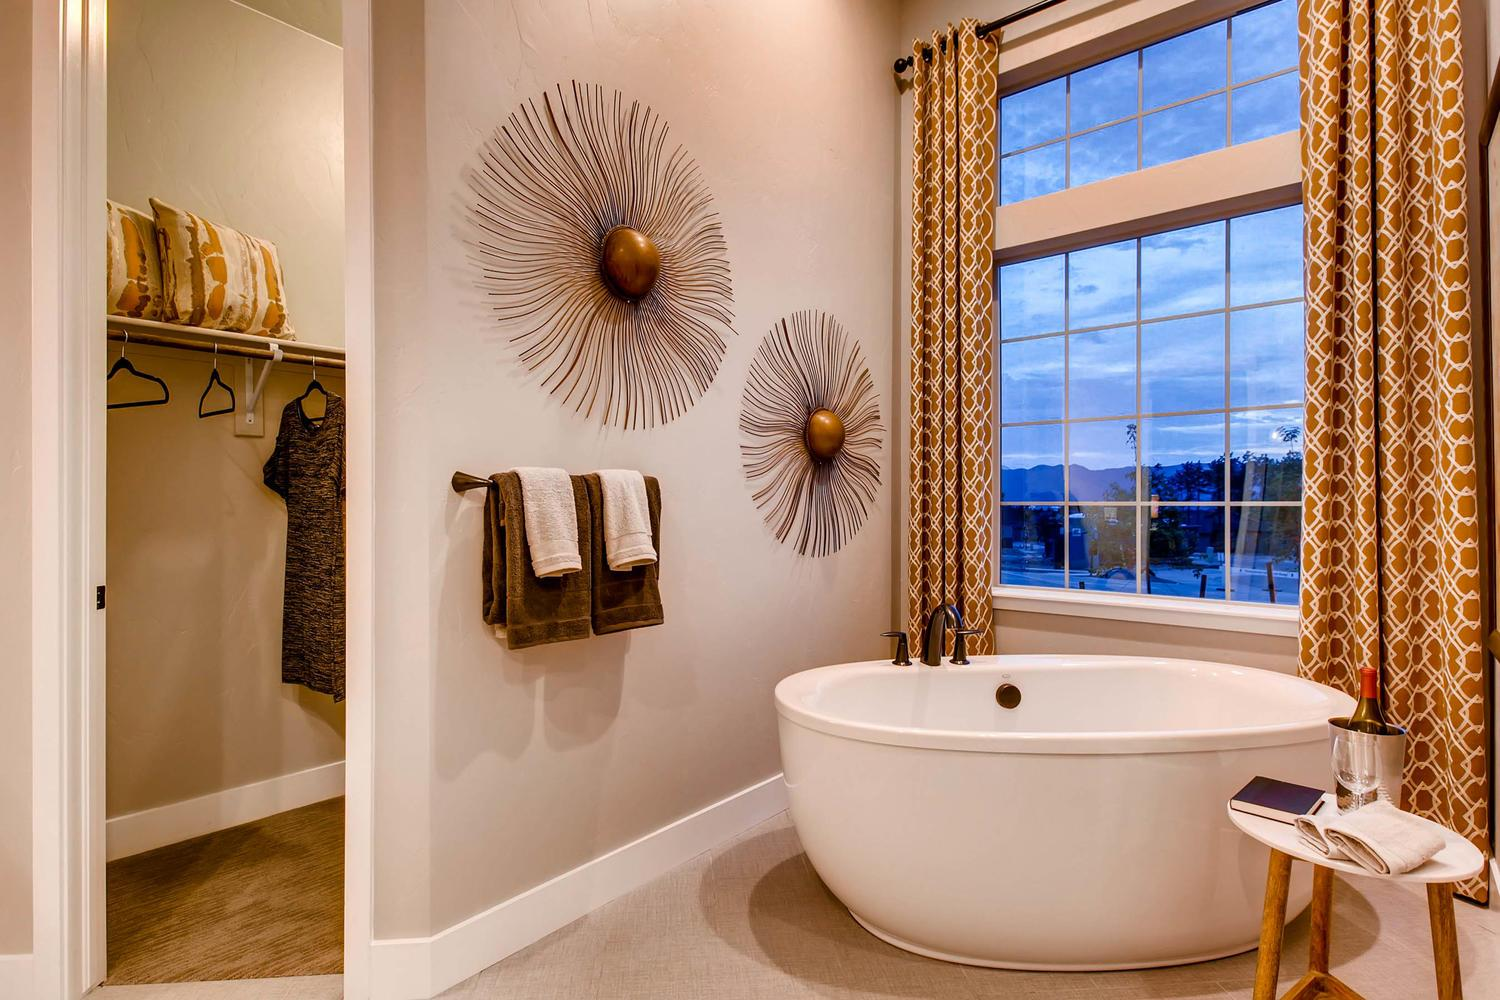 Bathroom featured in the Dynasty By Classic Homes in Colorado Springs, CO